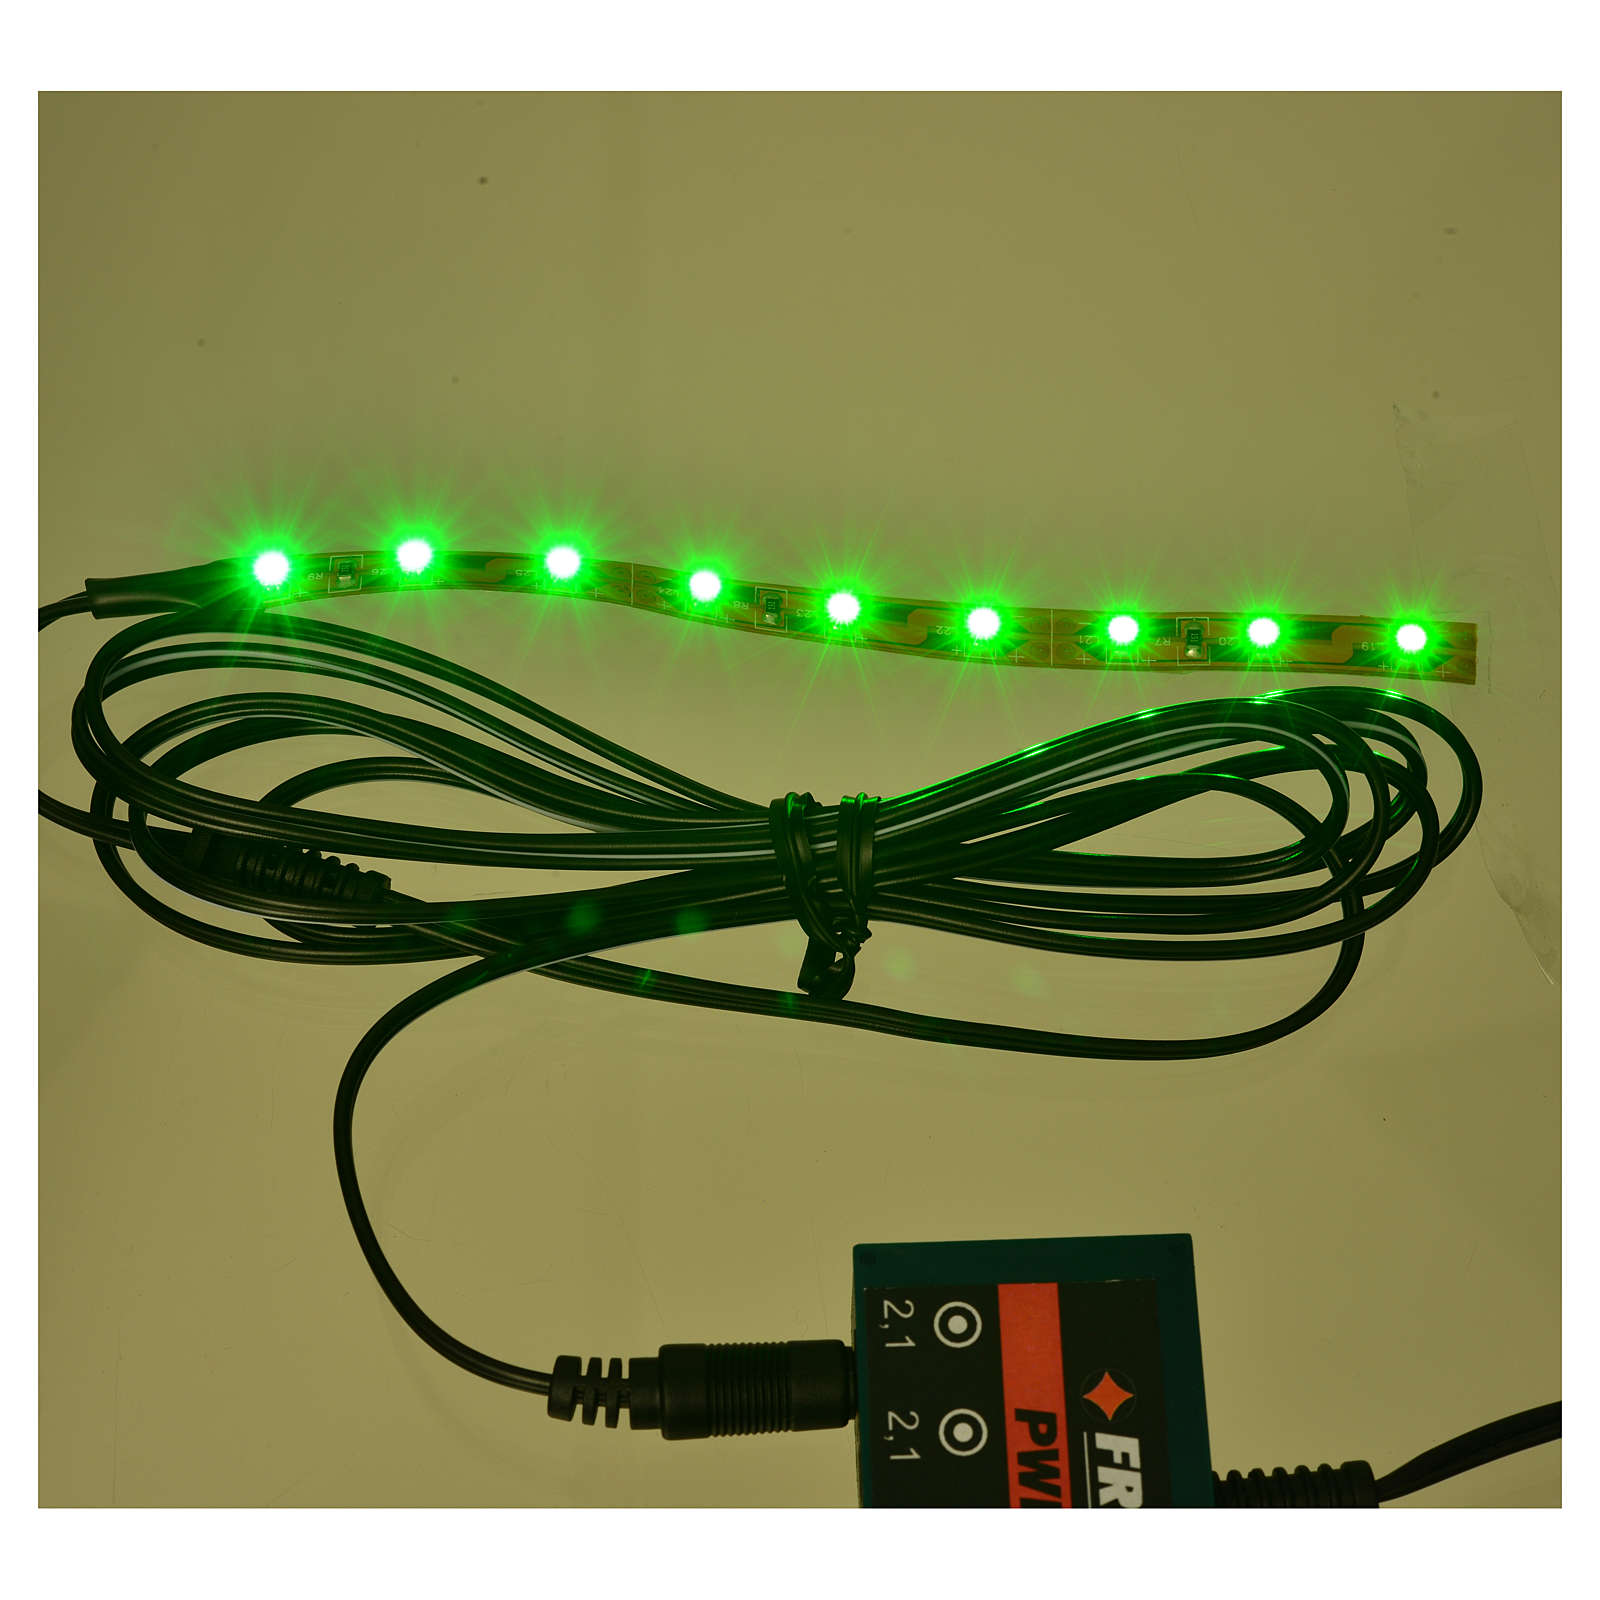 LED strip with 9 lights 0,8x12cm, warm white for Frisalight 4